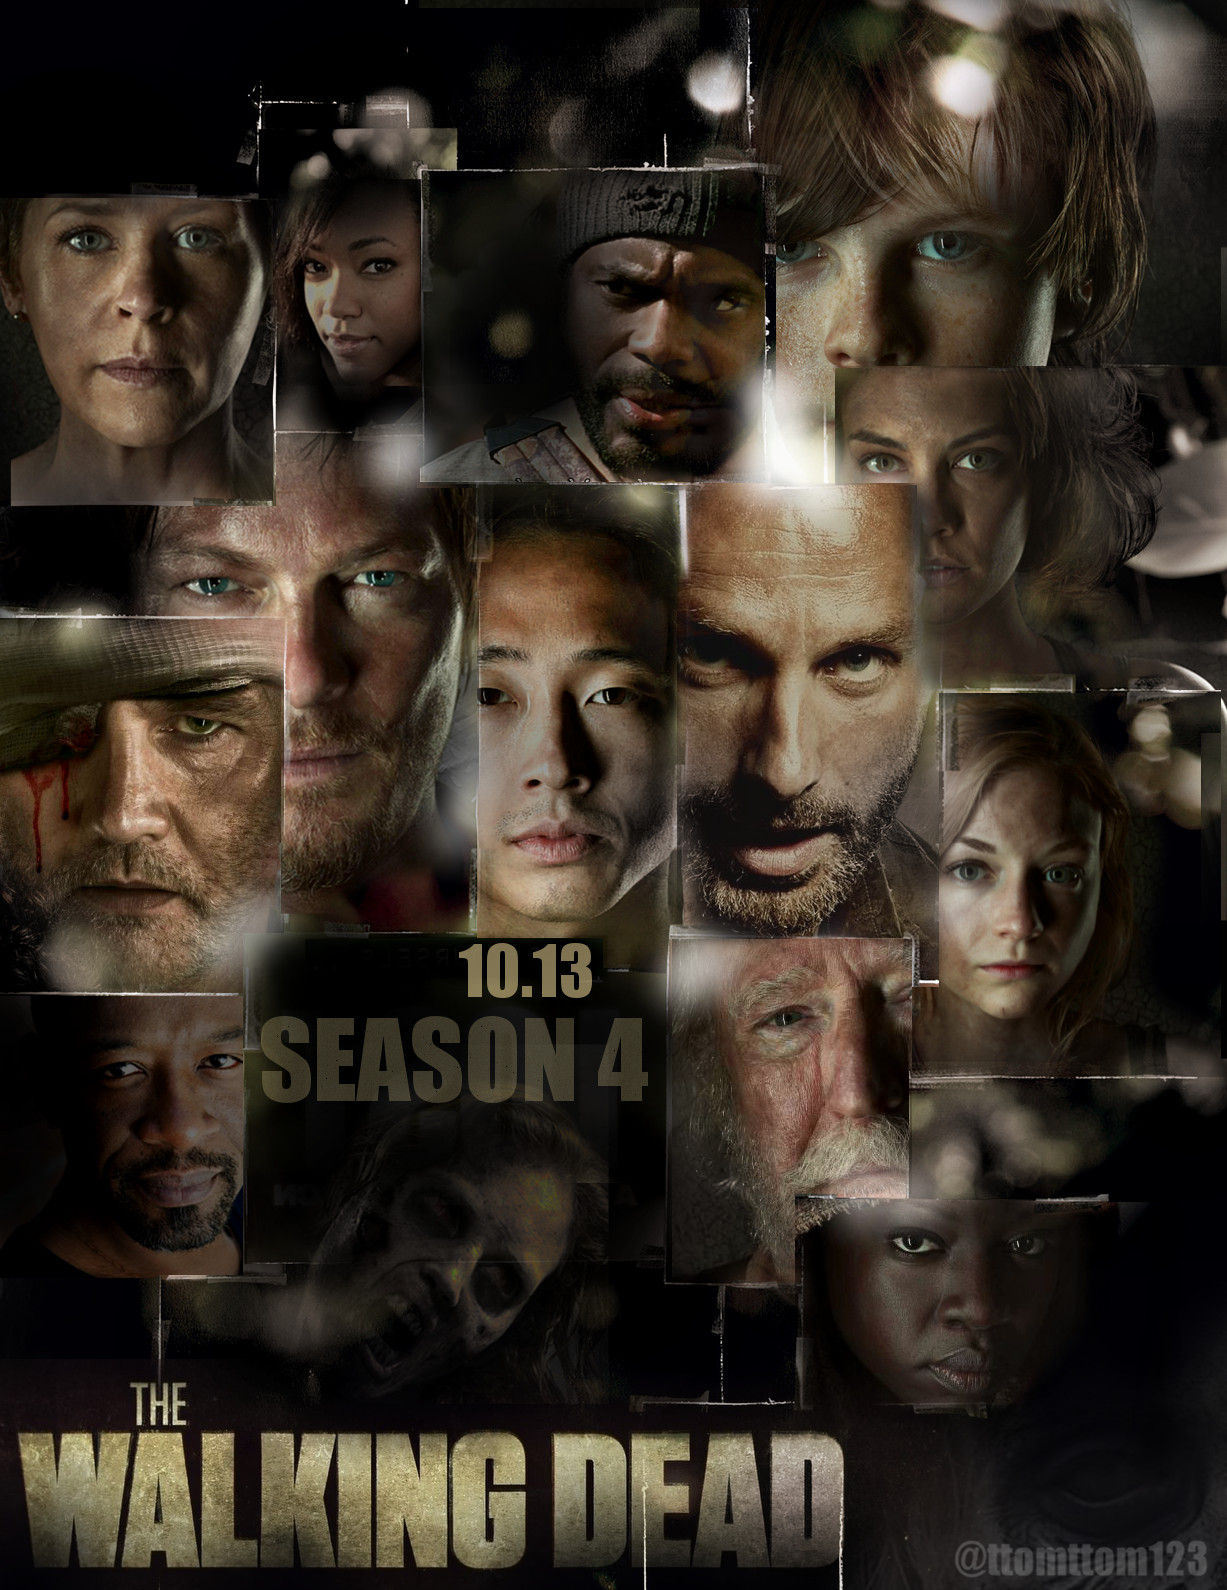 The Walking Dead S04E04 HDTV XviD